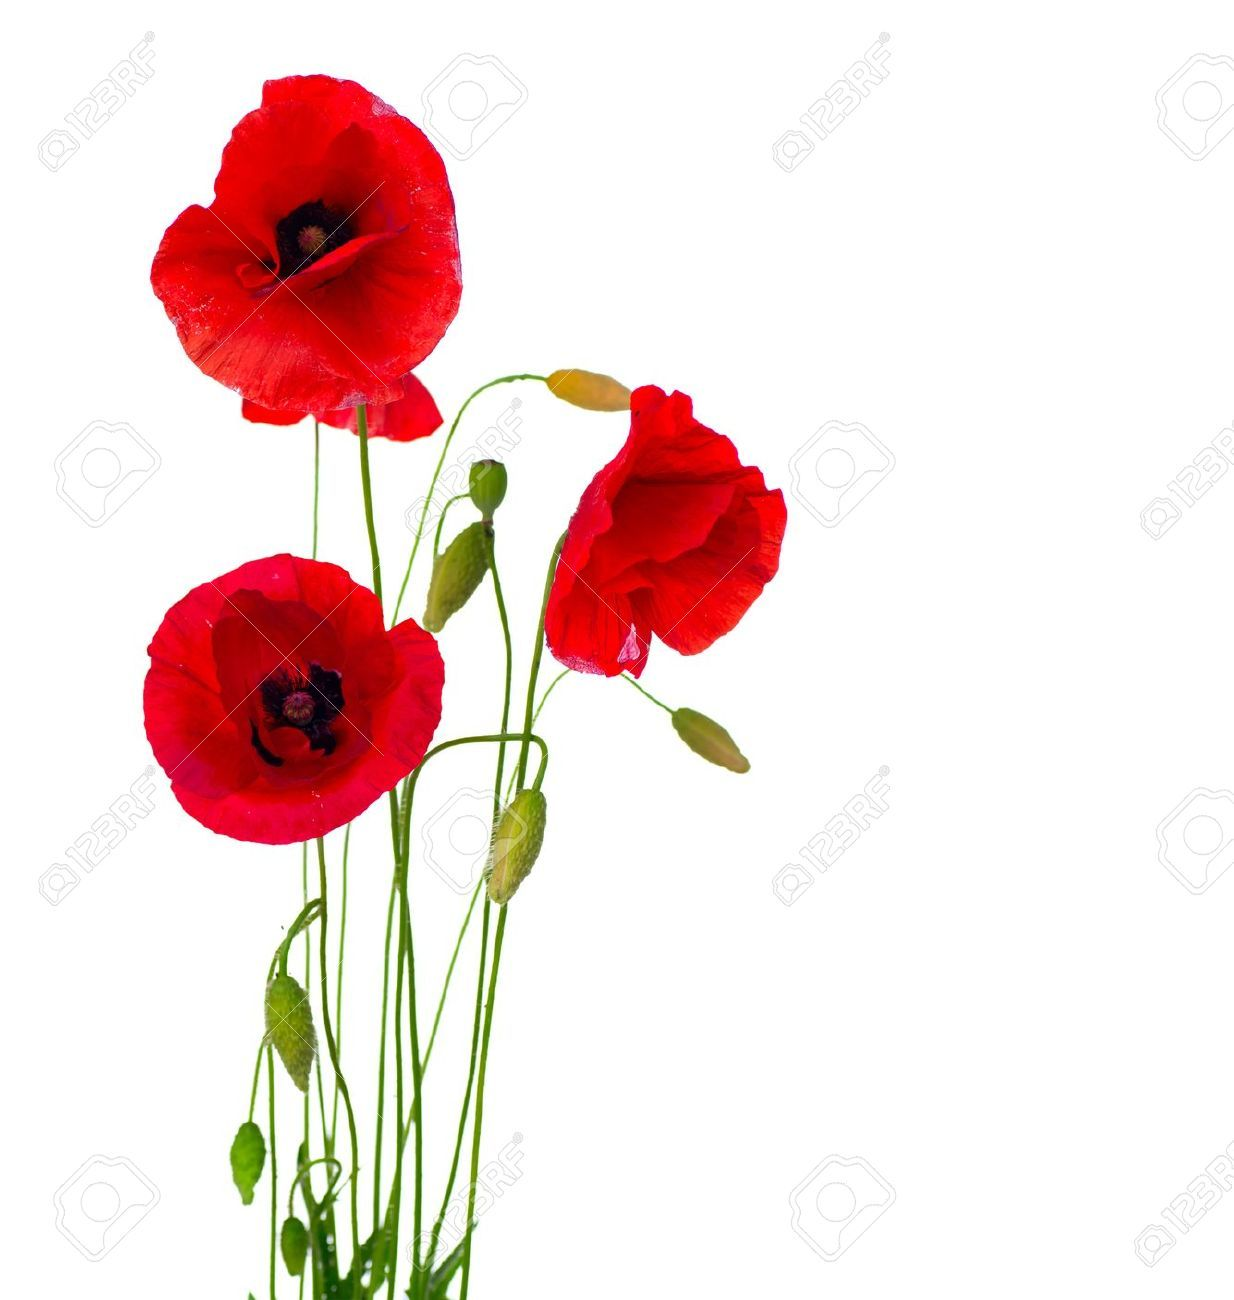 Poppy flower field at night royalty free stock photography image - Opium Poppy Stock Photos Images Royalty Free Opium Poppy Images